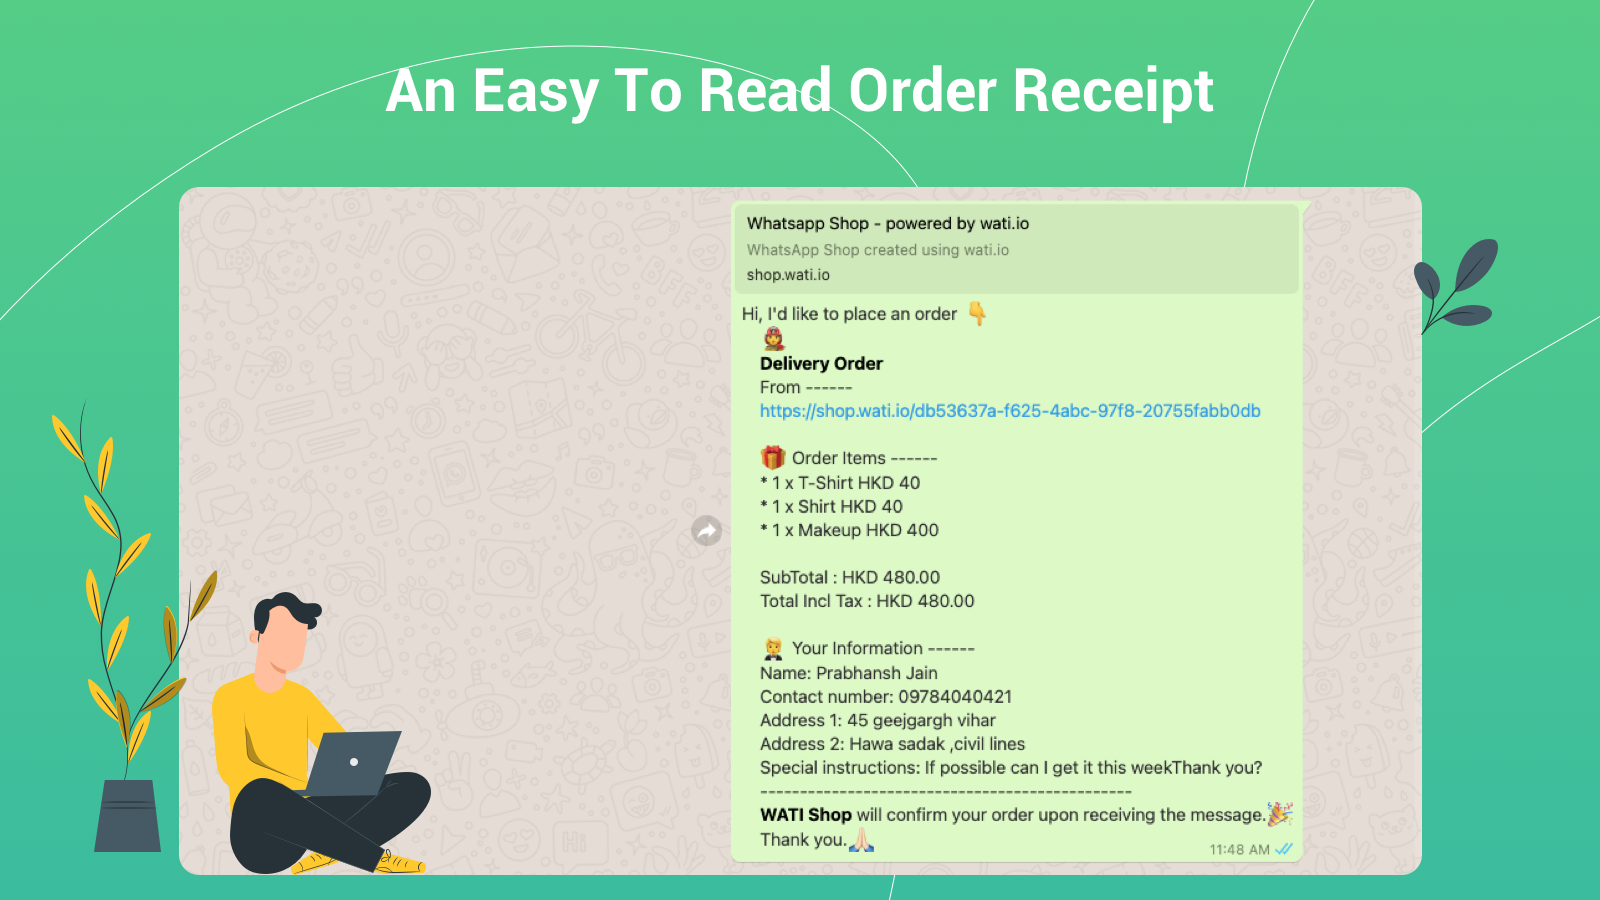 An Easy To Read Order Receipt